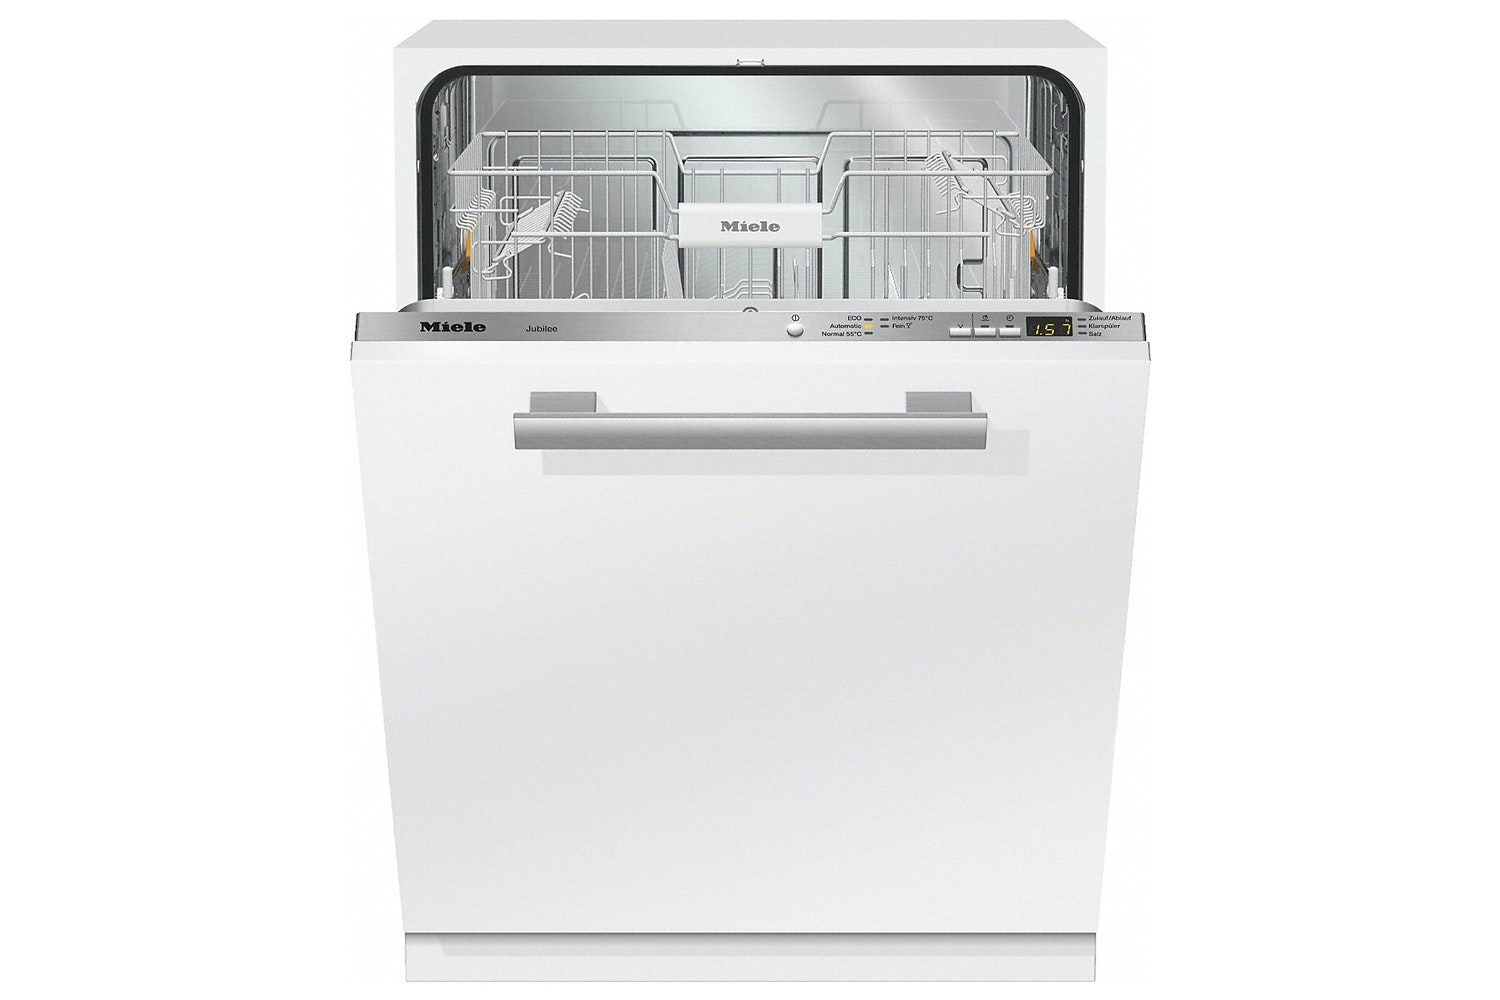 G 4990 Vi Jubilee  Fully-integrated, full-size dishwasher   Delay start and countdown indicator for great entry-level value